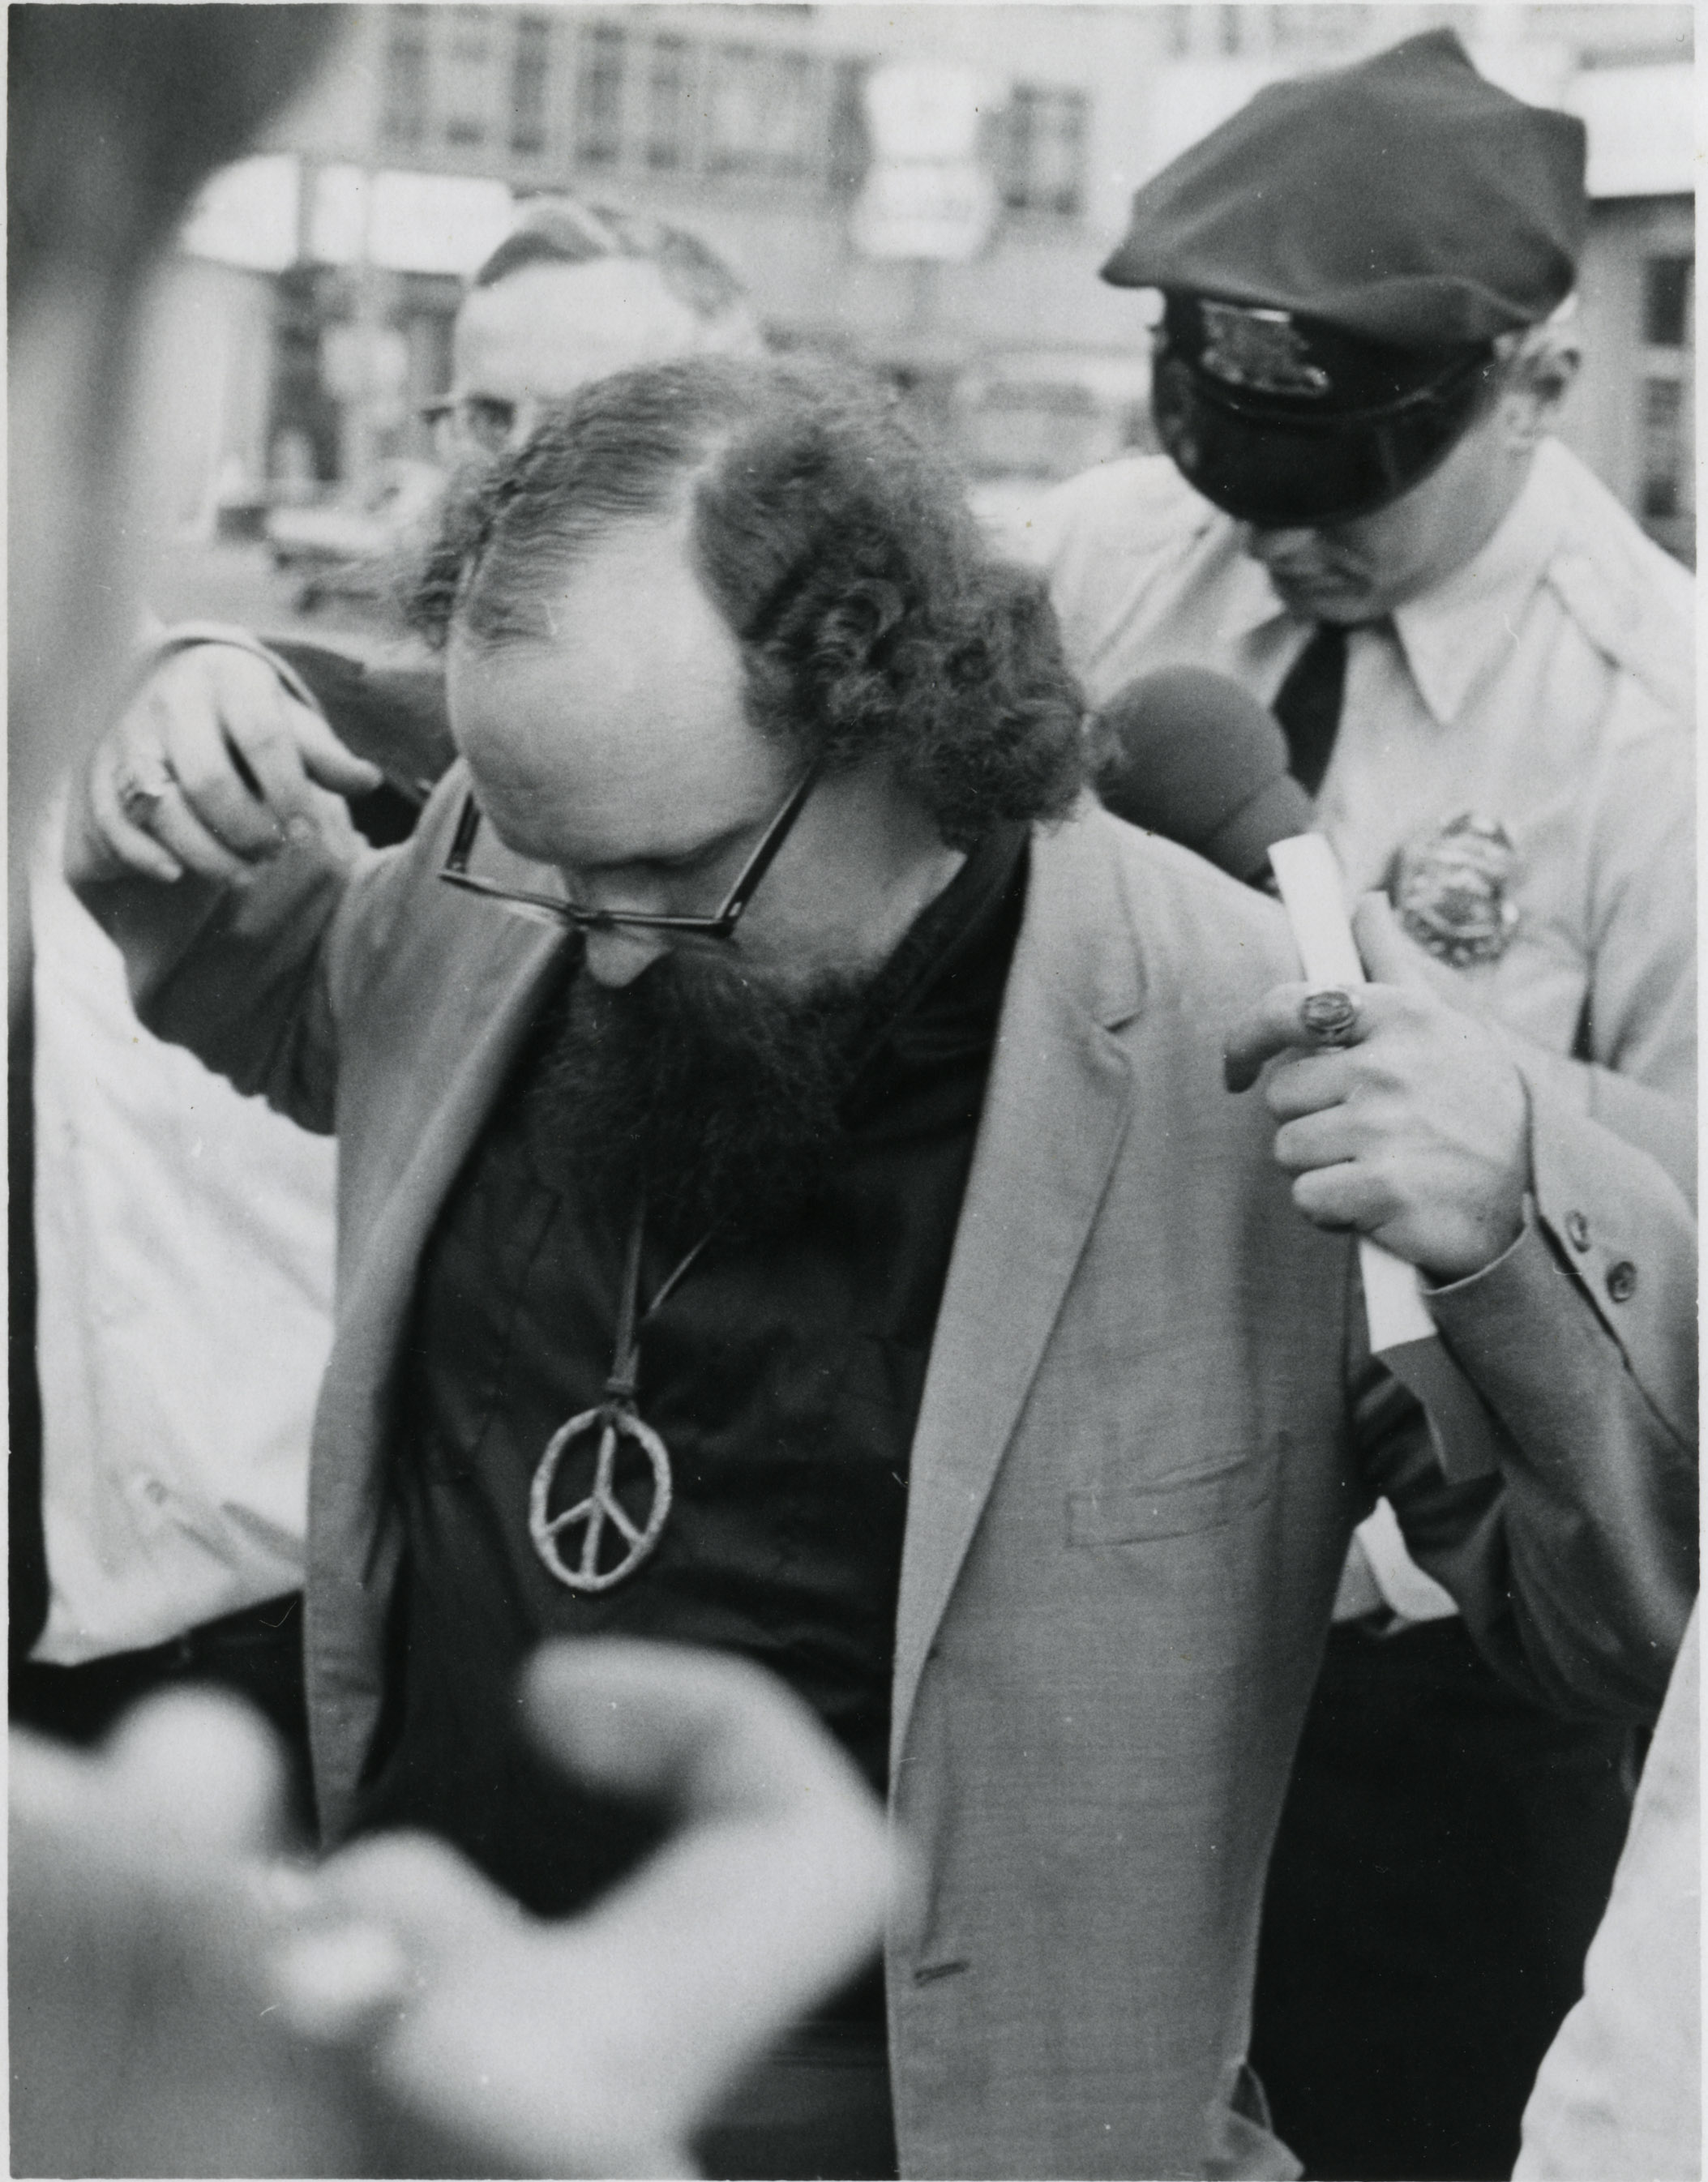 Depiction of Arrest of Jon Higgenbotham (Milwaukee 14), Sept. 24, 1968